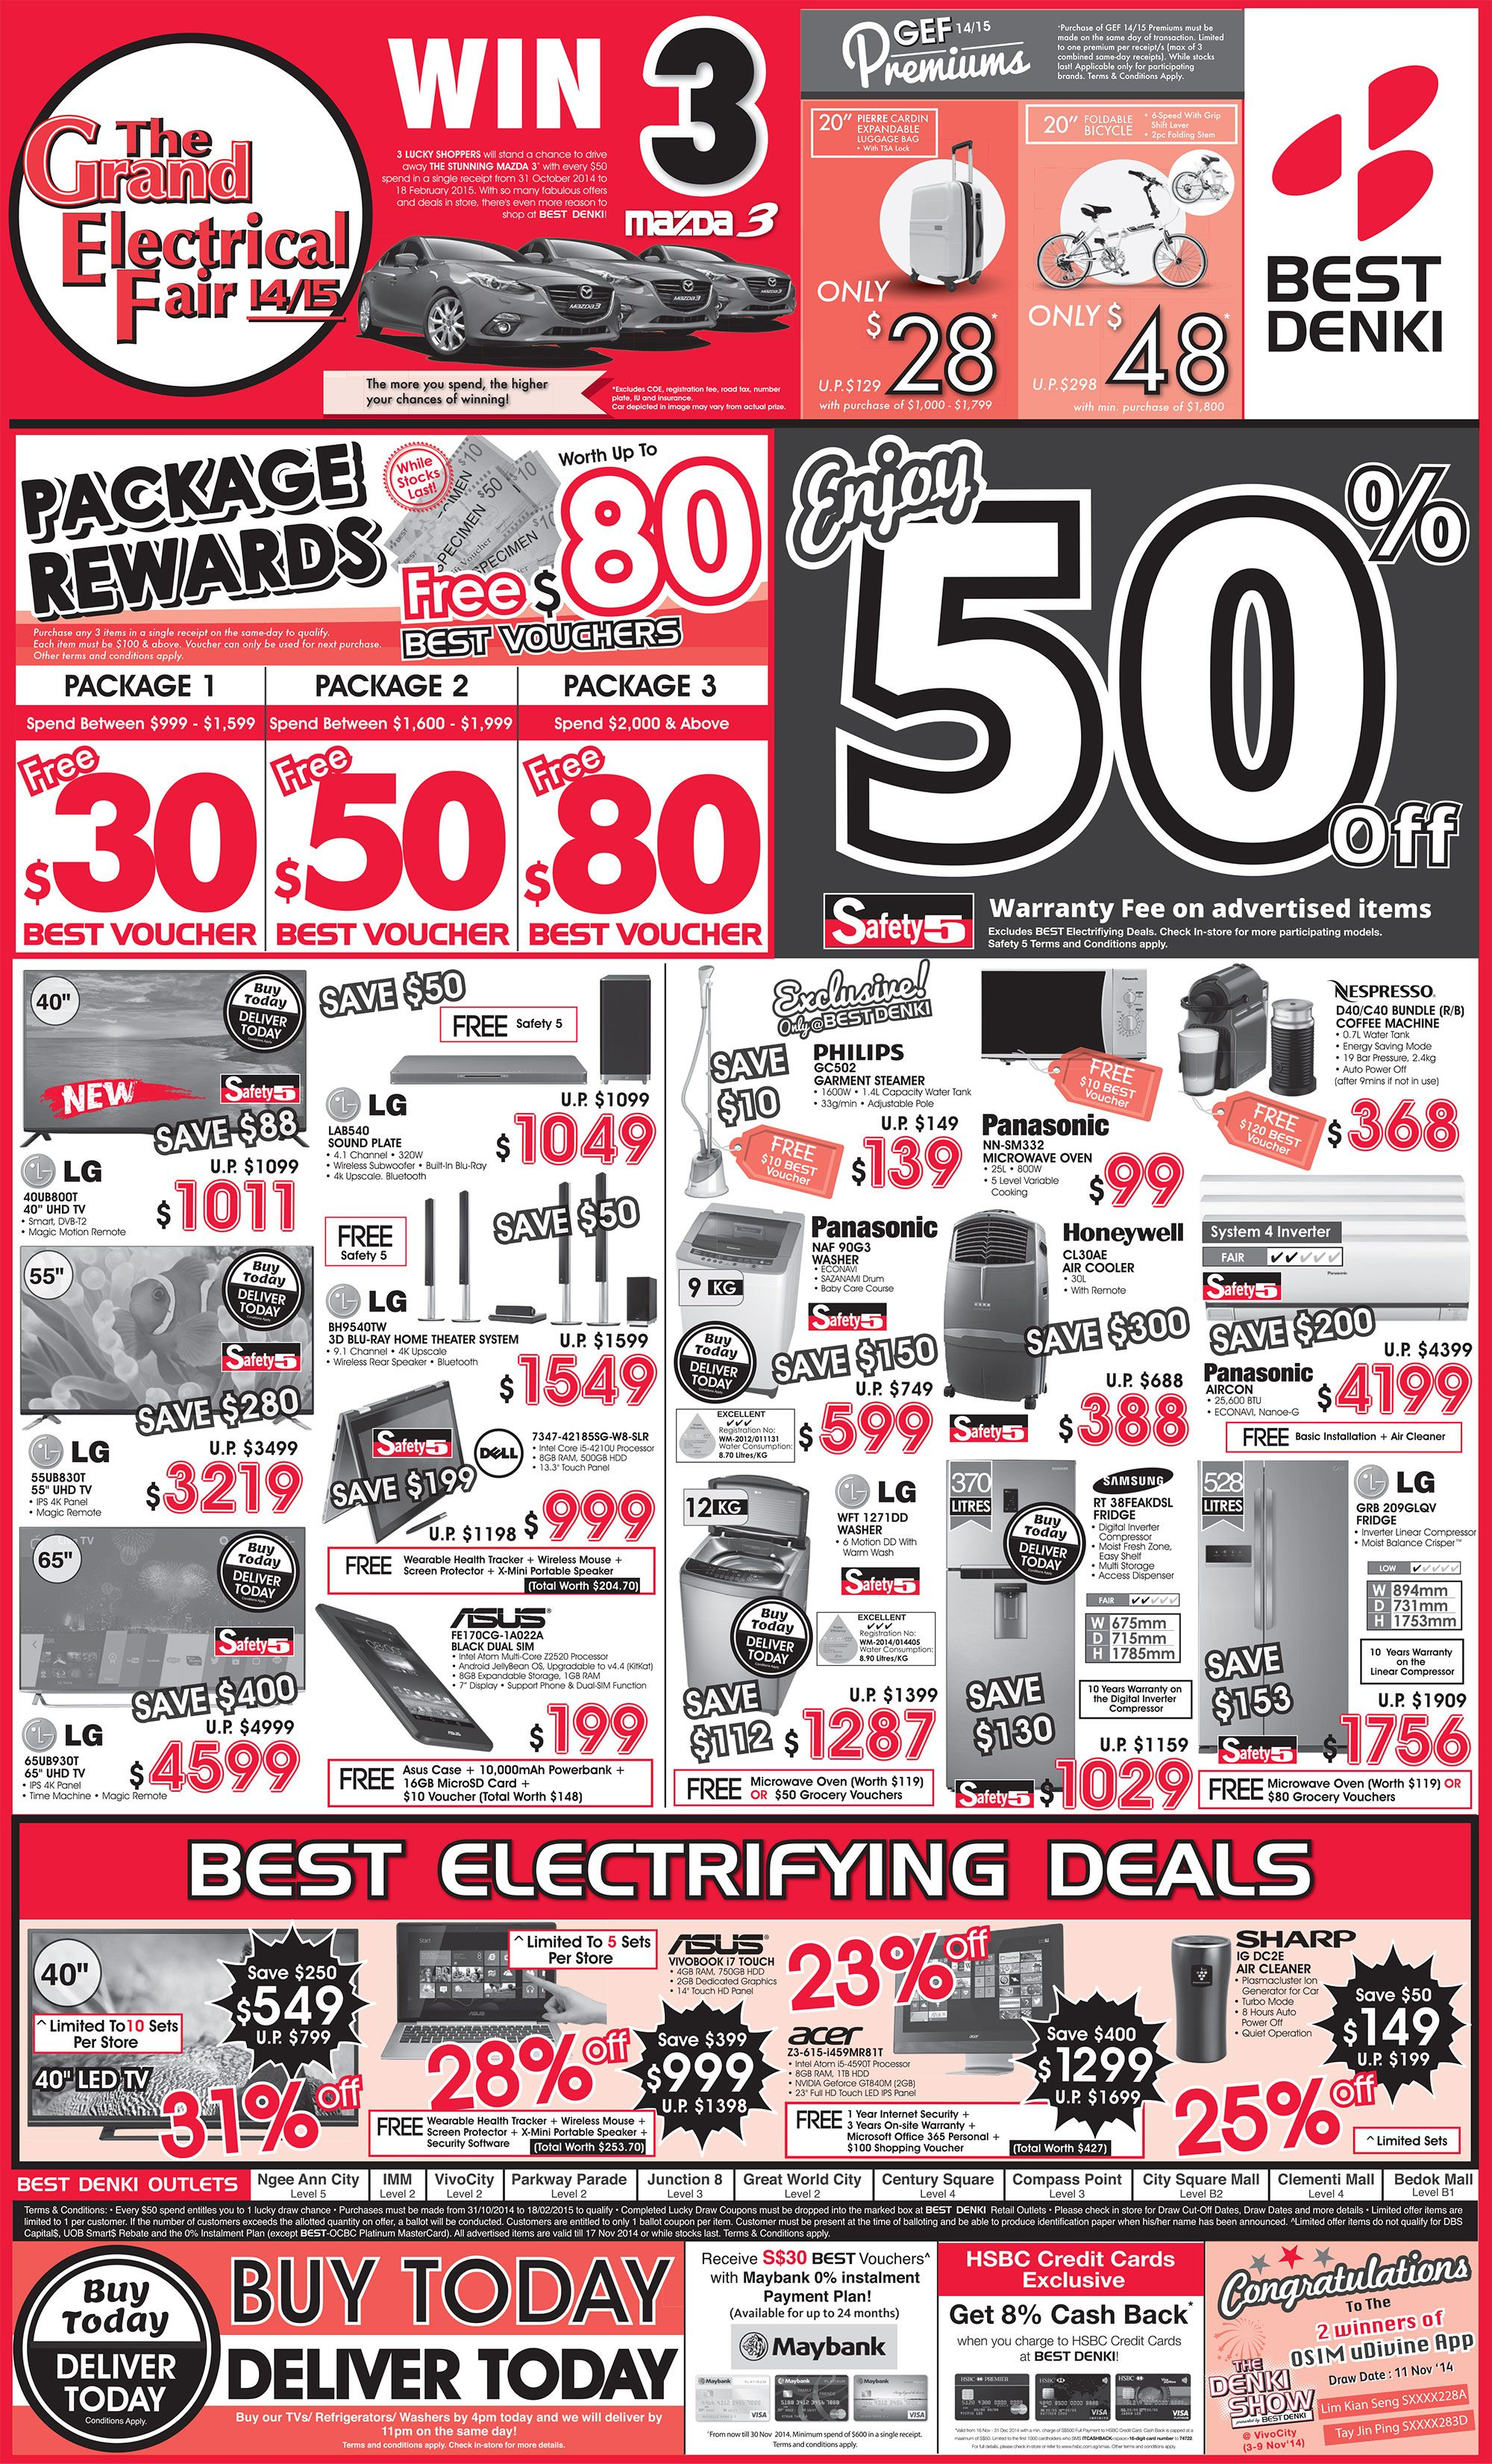 The Grand Electrical Fair 14 15 Lucky Draw Prizes Win 3 Madza 3